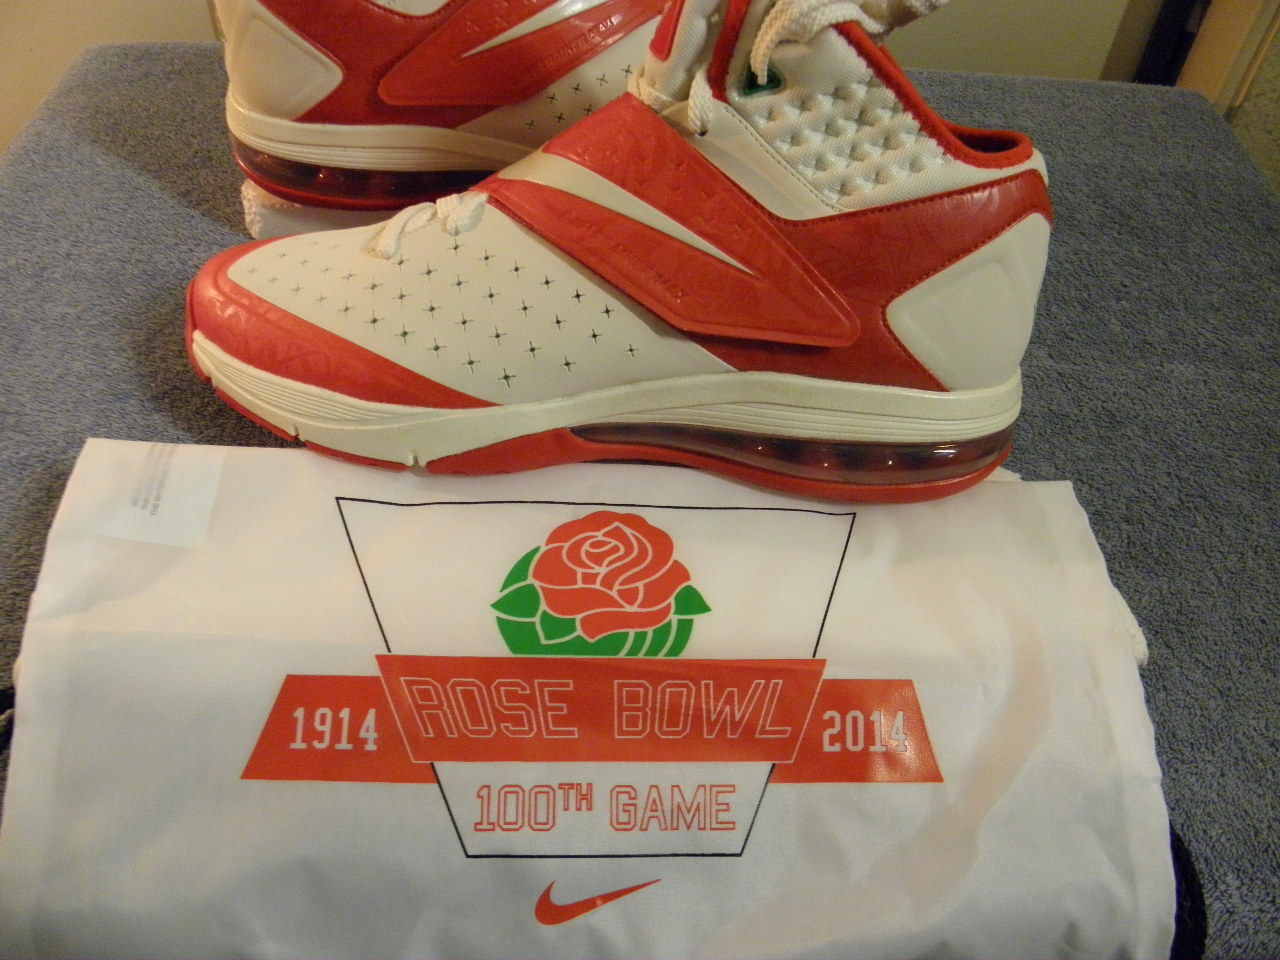 Nike air max cj81 cj 81 trainer calvin johnson s centesima 10,5 s rose bowl centesima s limited c405c7